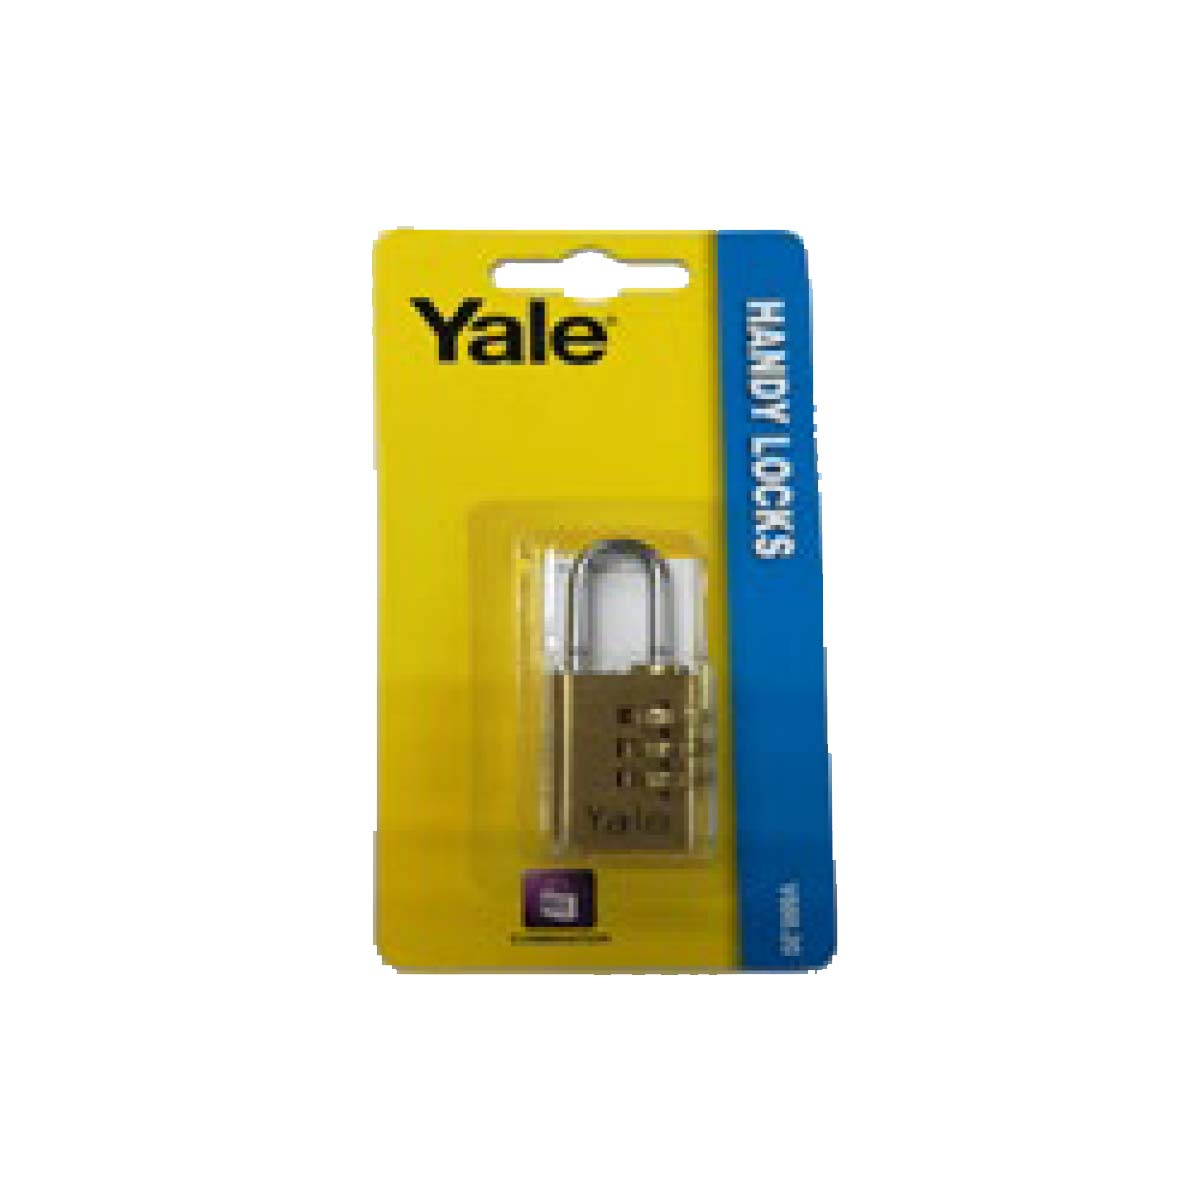 Yale Resettable V688.20